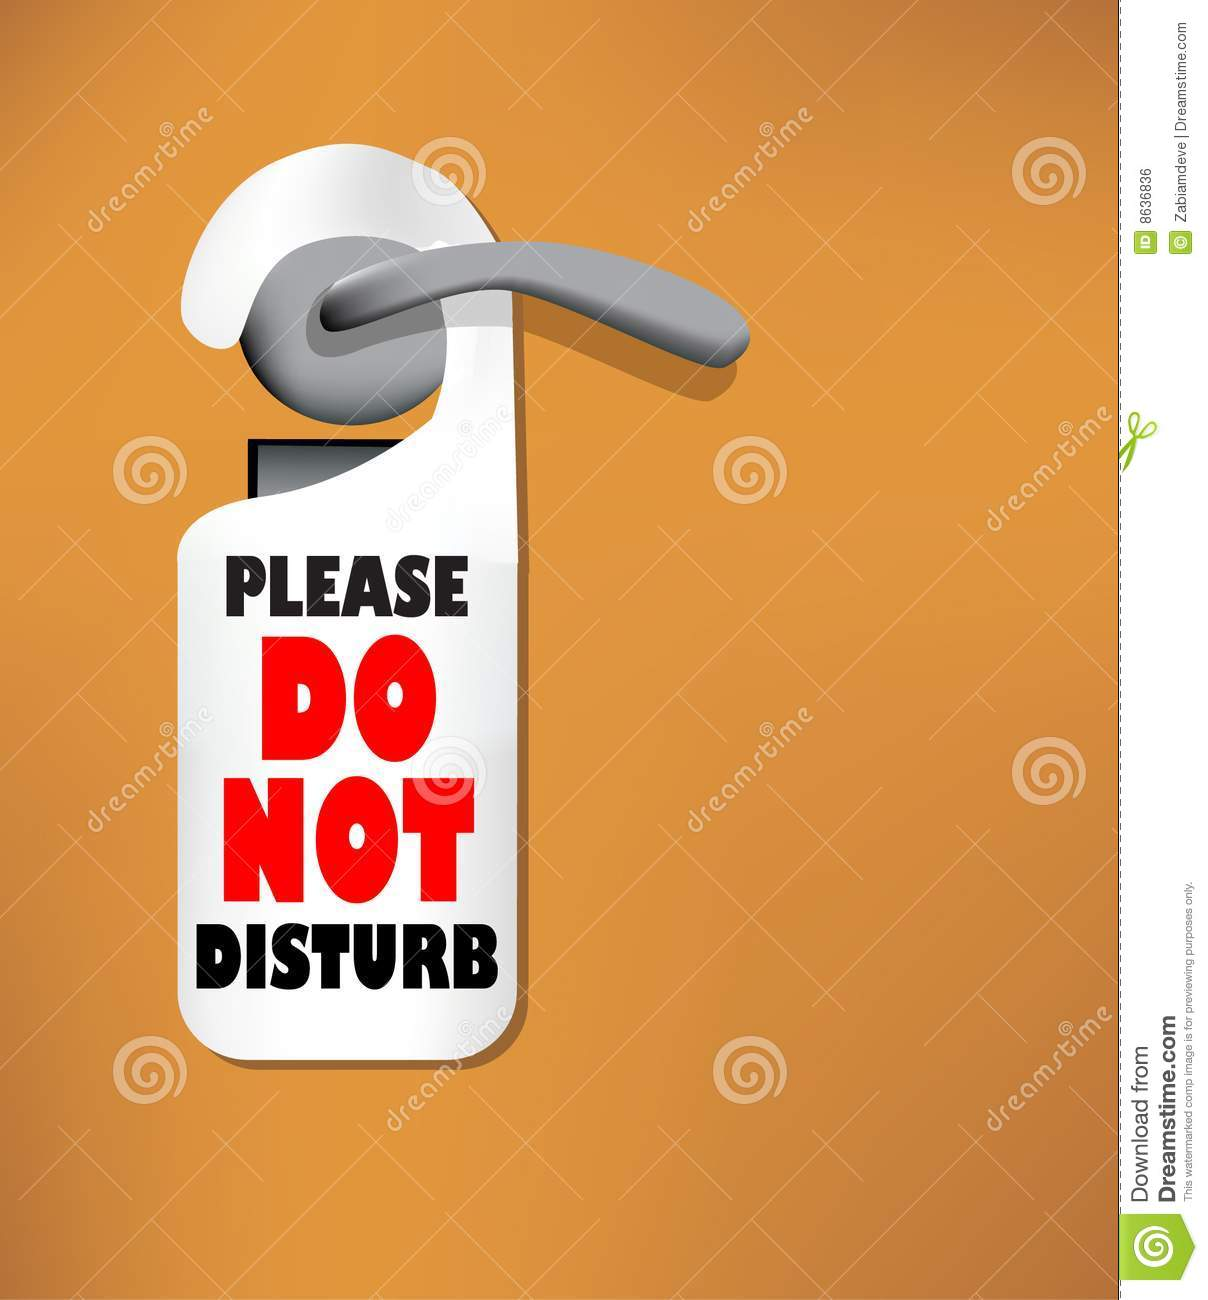 Wood Door With A Do Not Disturb Sign Royalty Free Stock